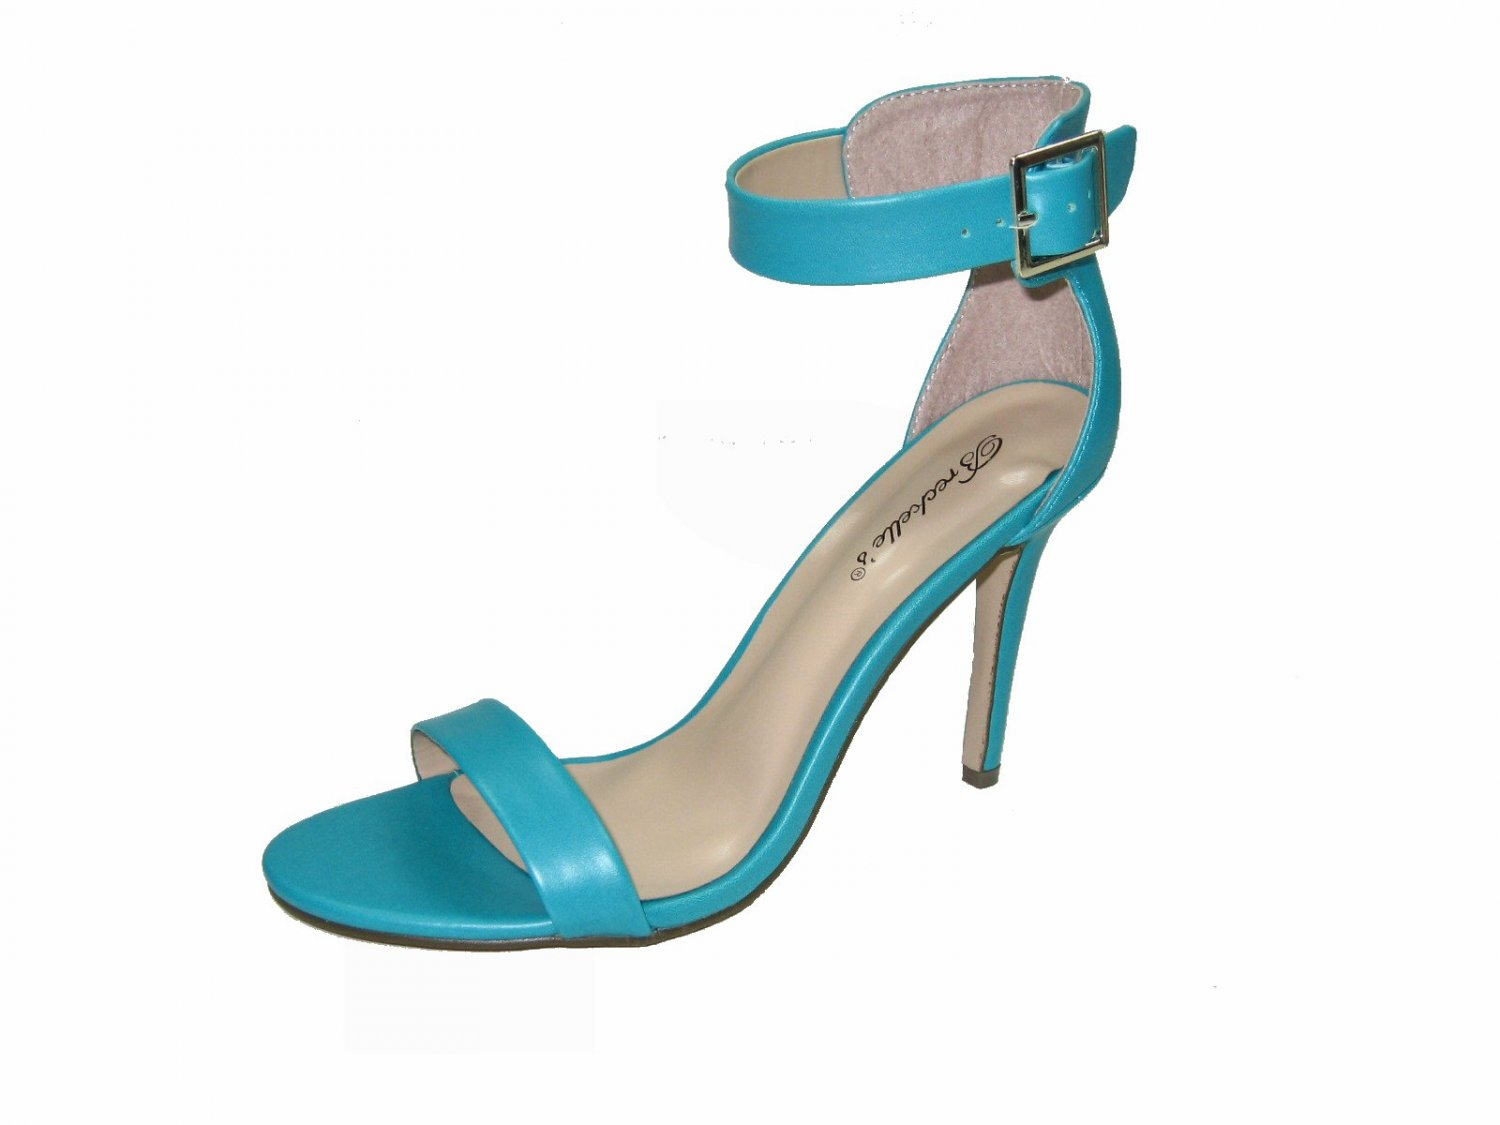 Breckelle's Sydney-31 strappy 4 inch stiletto heel sandals shoes aqua size 7